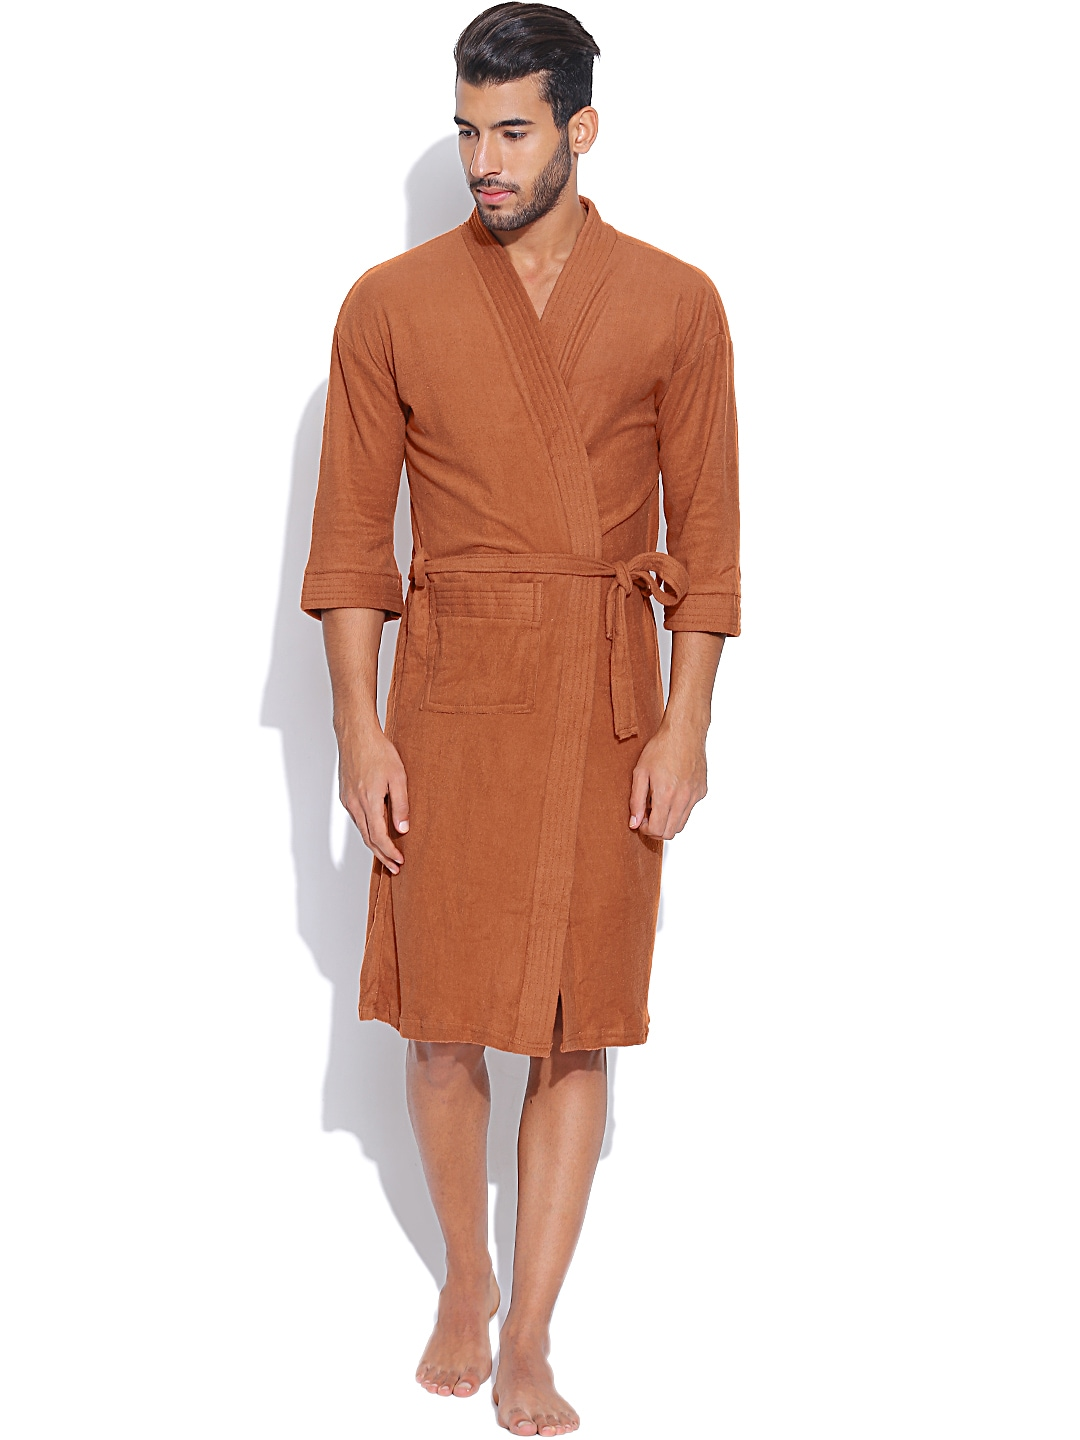 Sand Dune Rust Orange Bathrobe